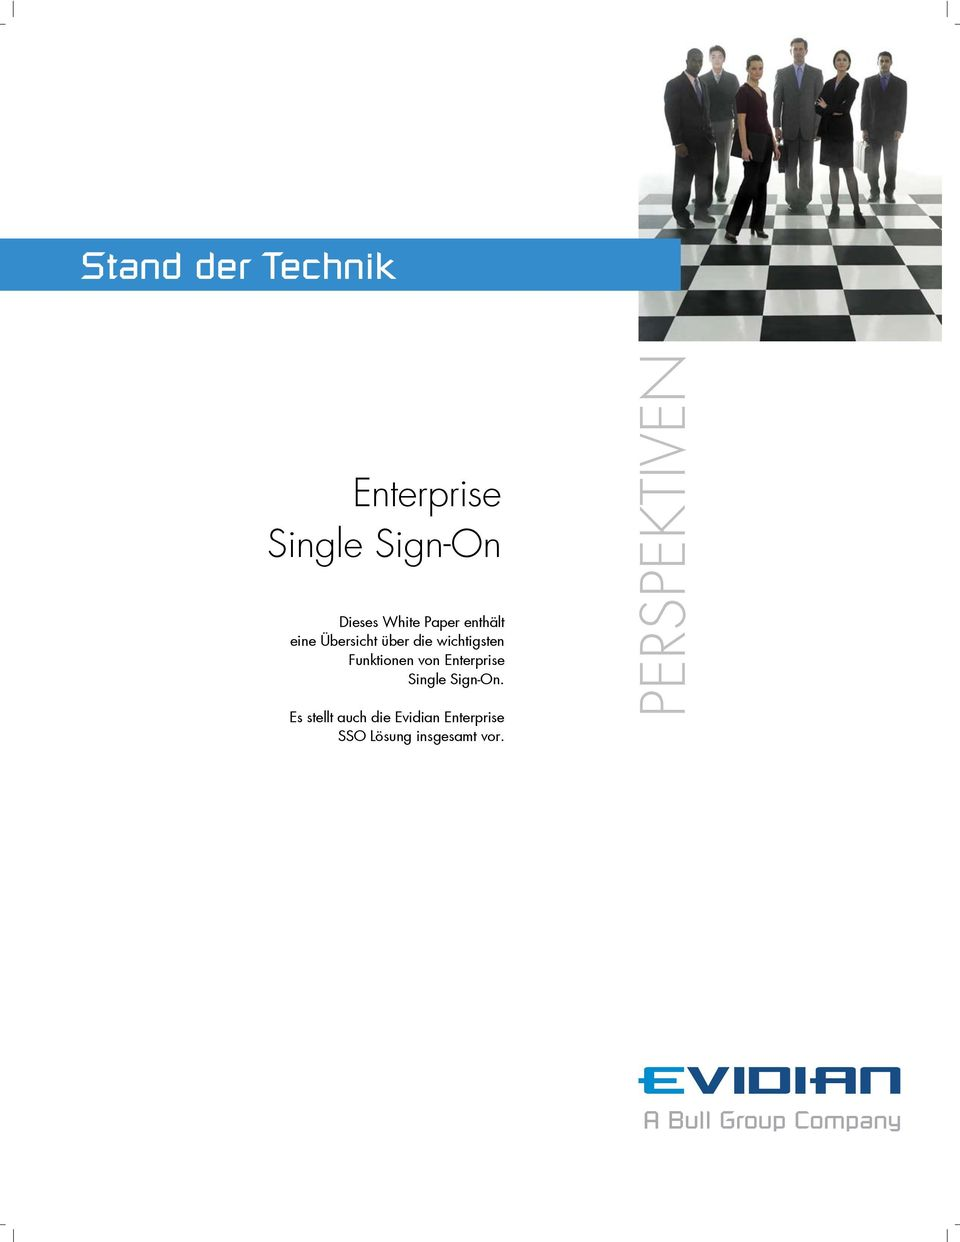 Funktionen von Enterprise Single Sign-On.